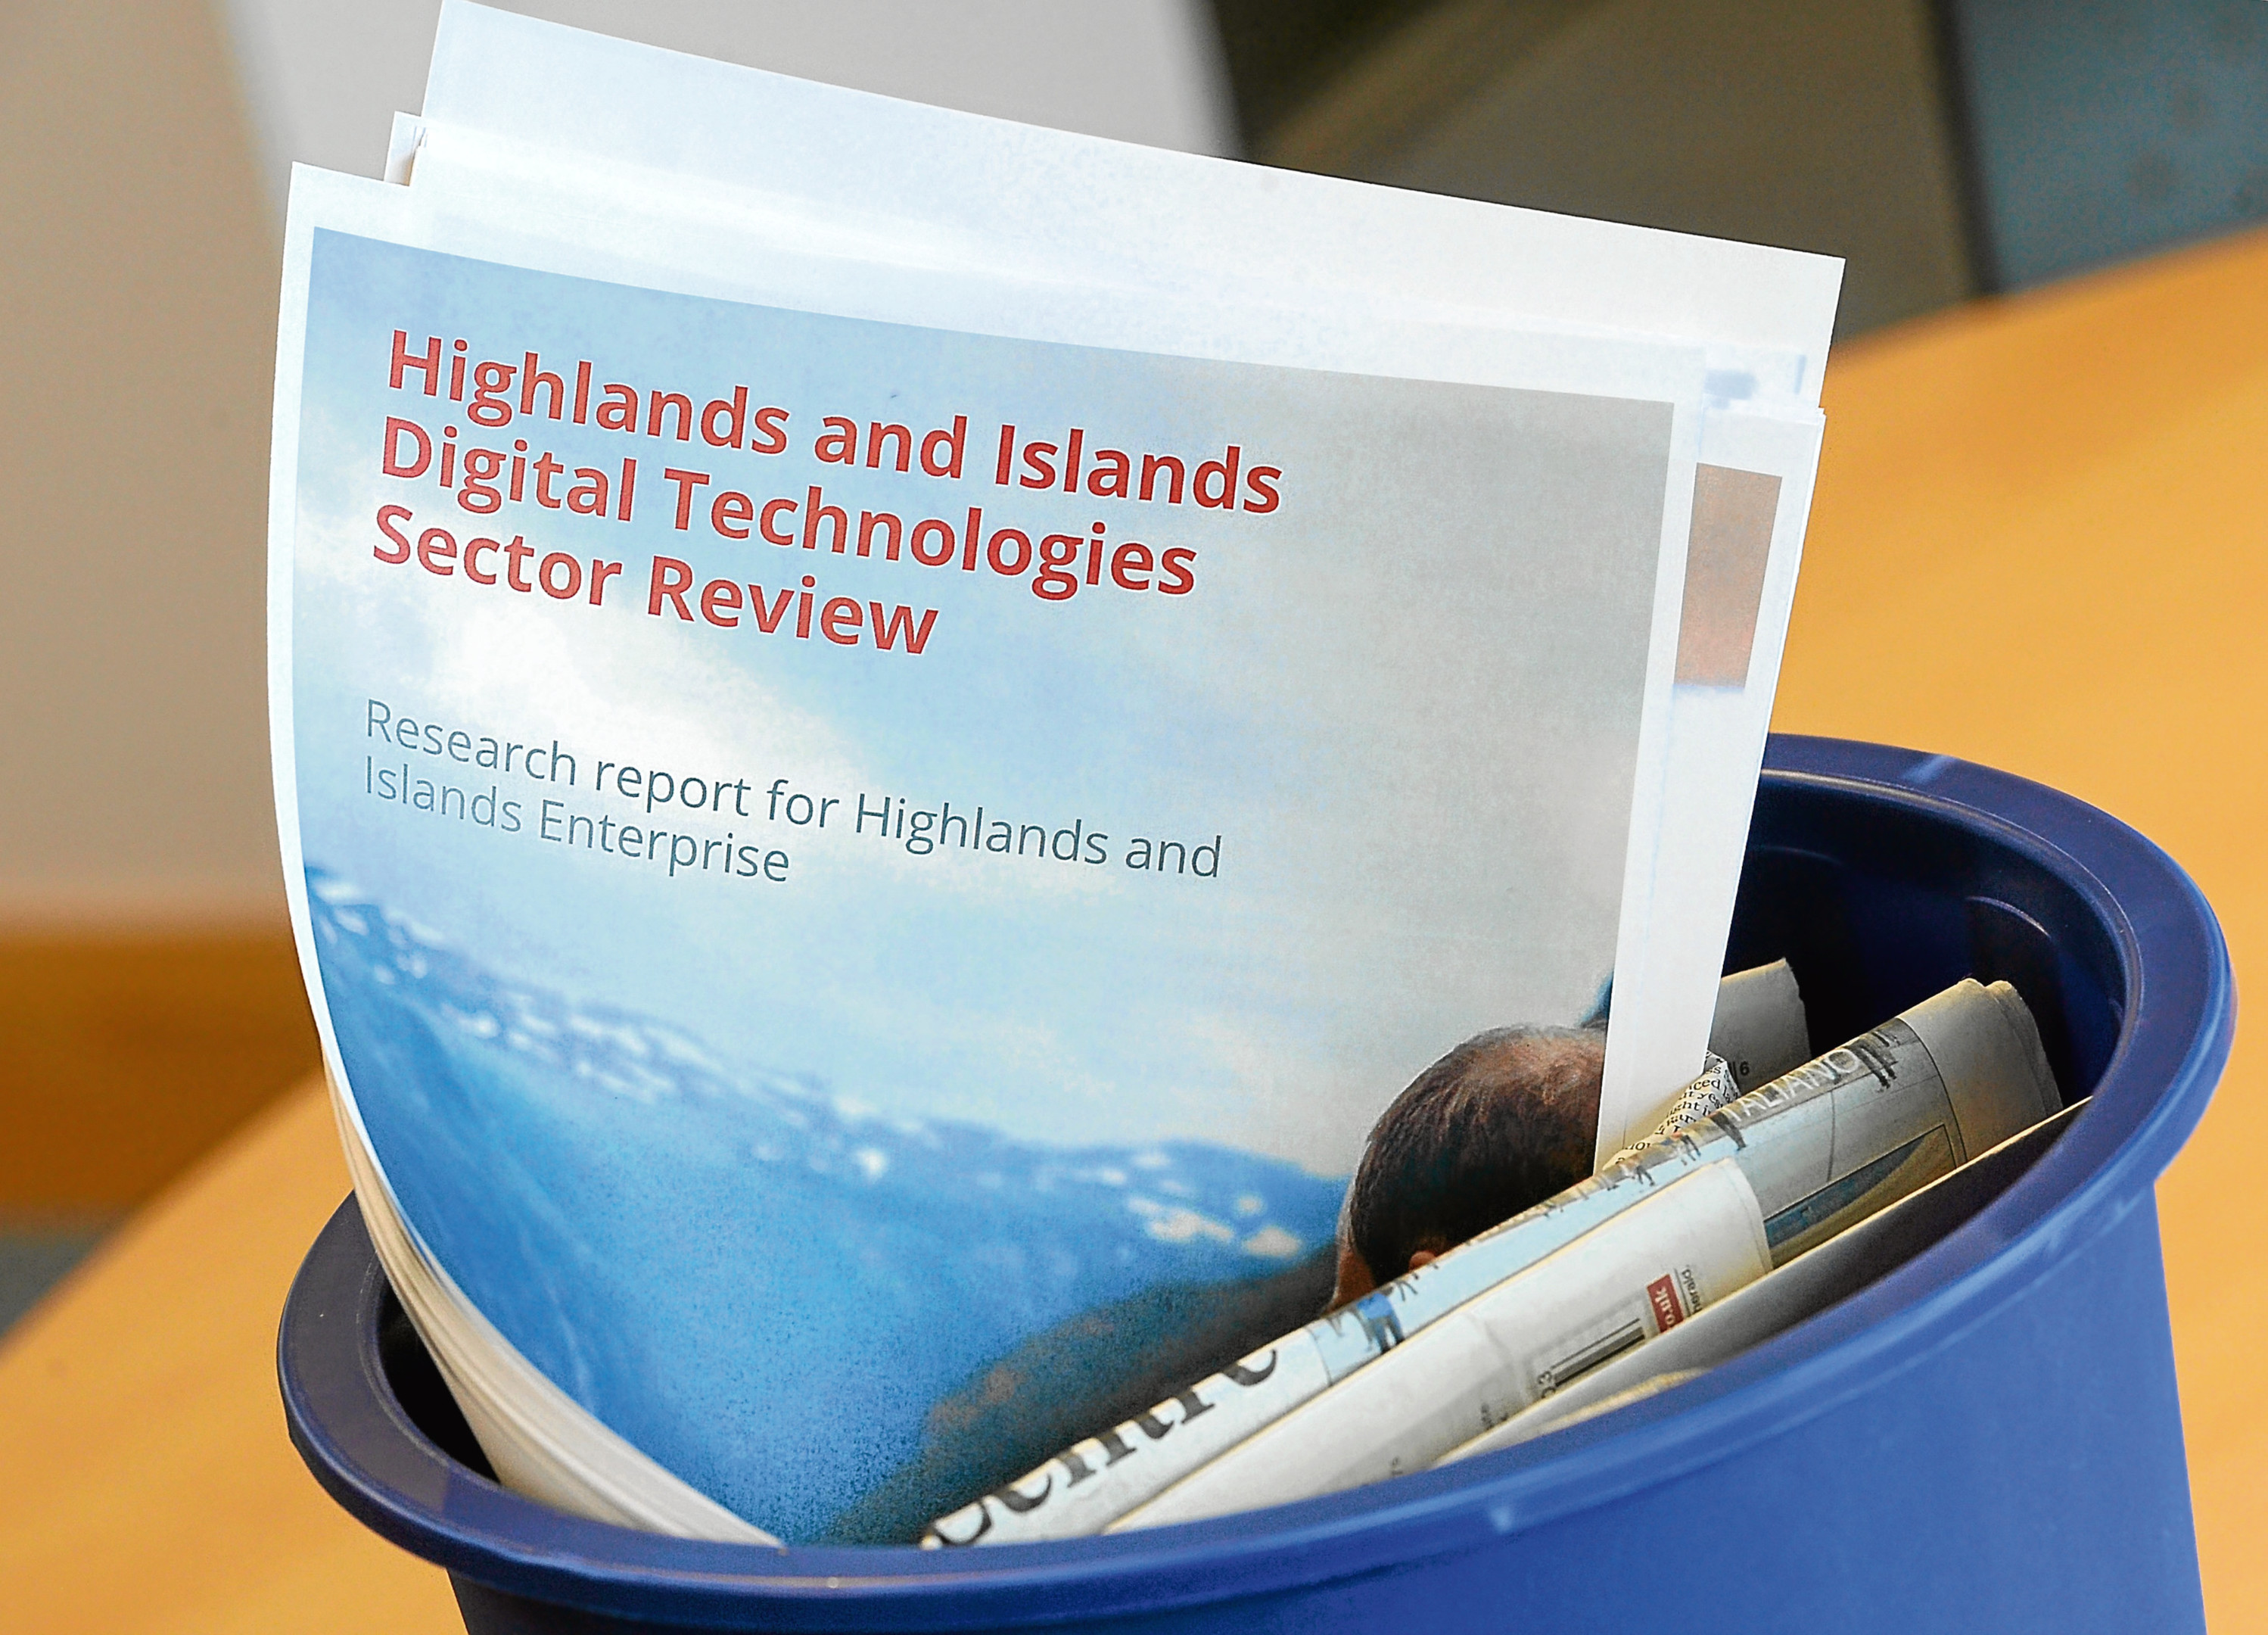 A binned HIE report on digital technologies.